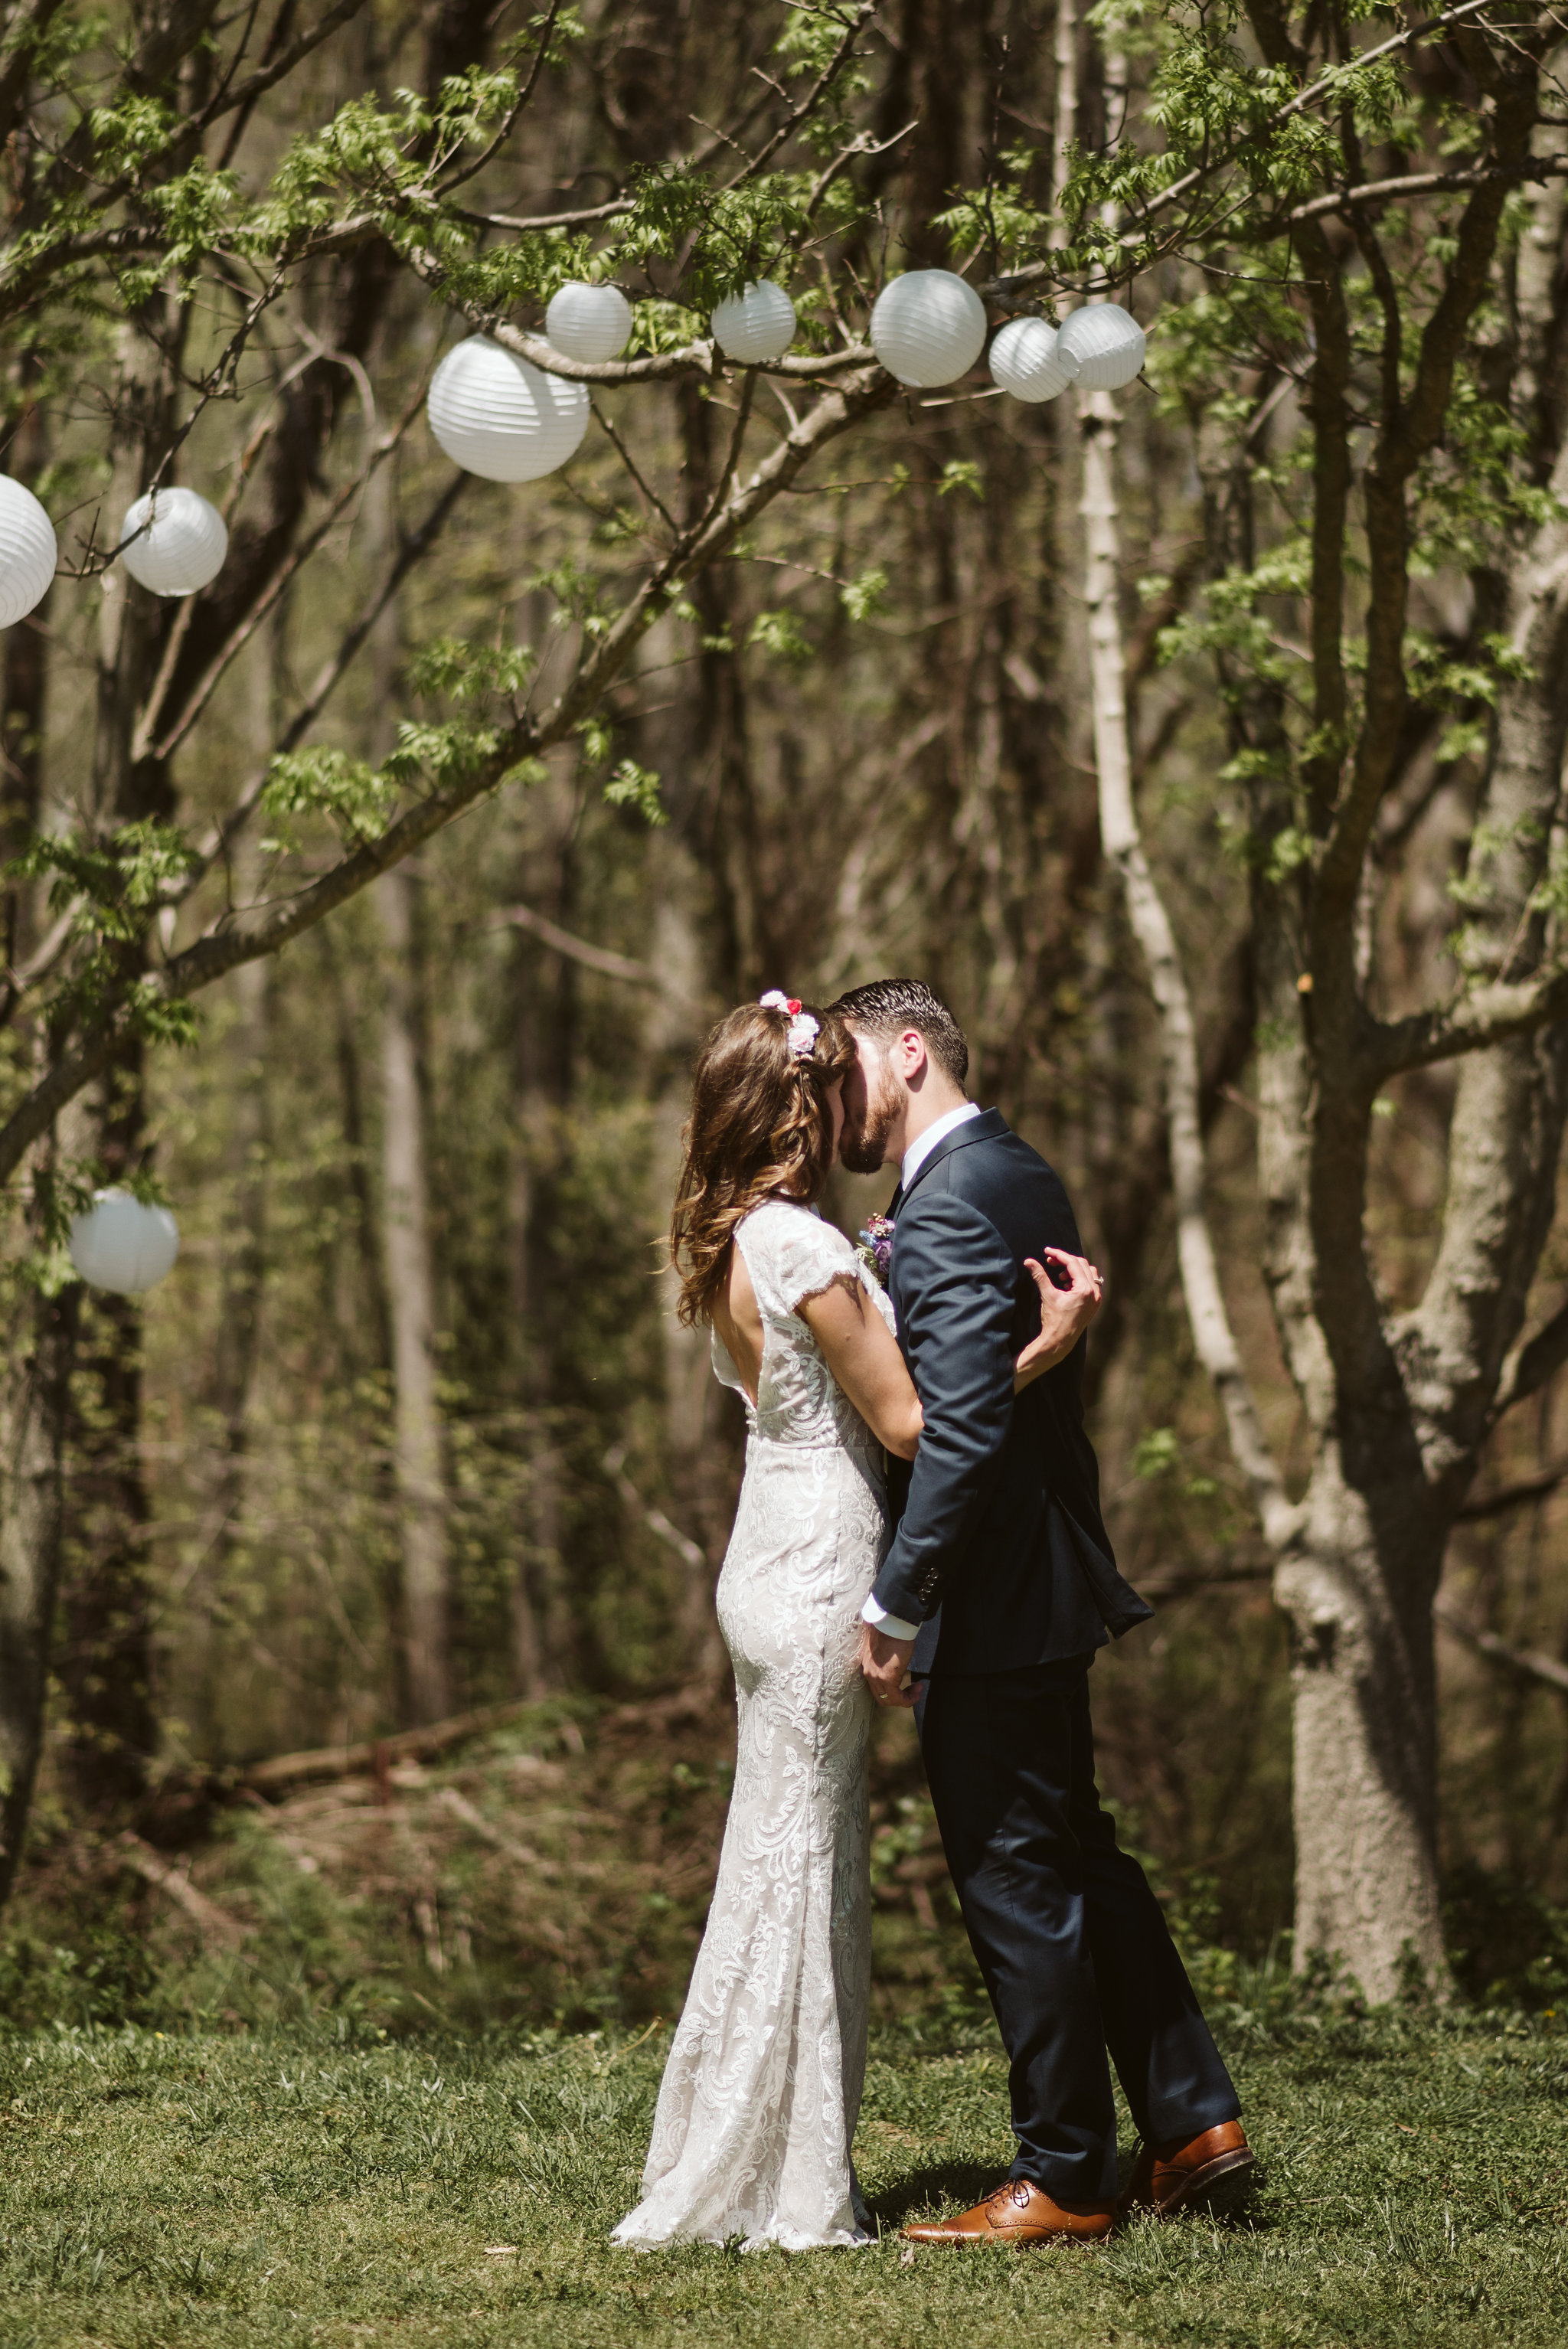 Spring Outdoor Wedding, Park, Baltimore Wedding Photographer, DIY, Classic, Upcycled, Garden Party, Romantic,  Bride and Groom Sharing Their First Kiss, Flower Crown